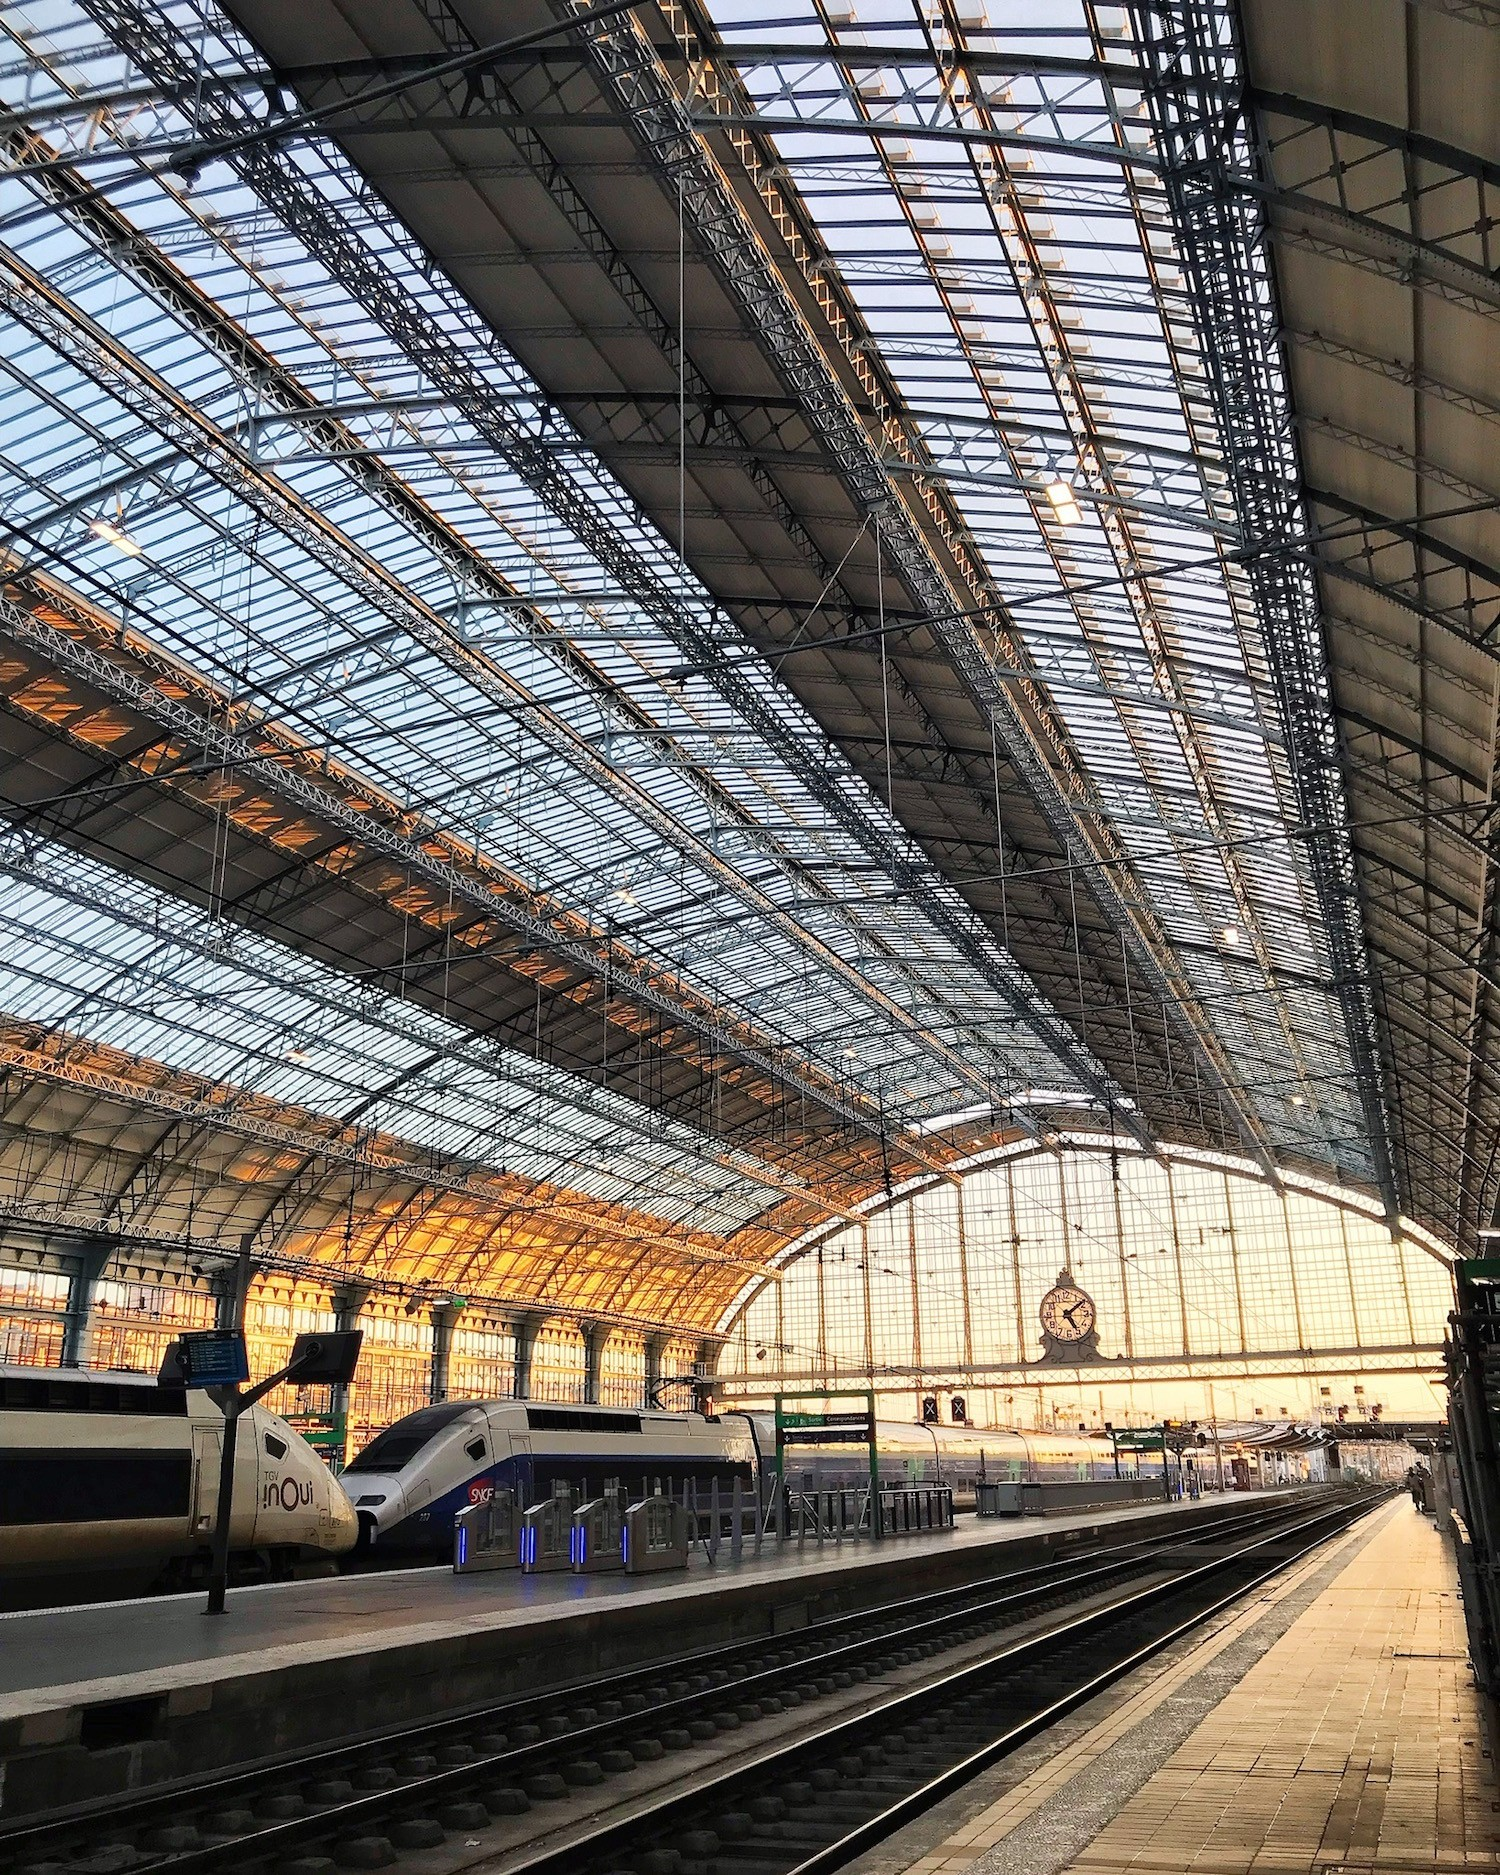 GARE SAINT JEAN BORDEAUX